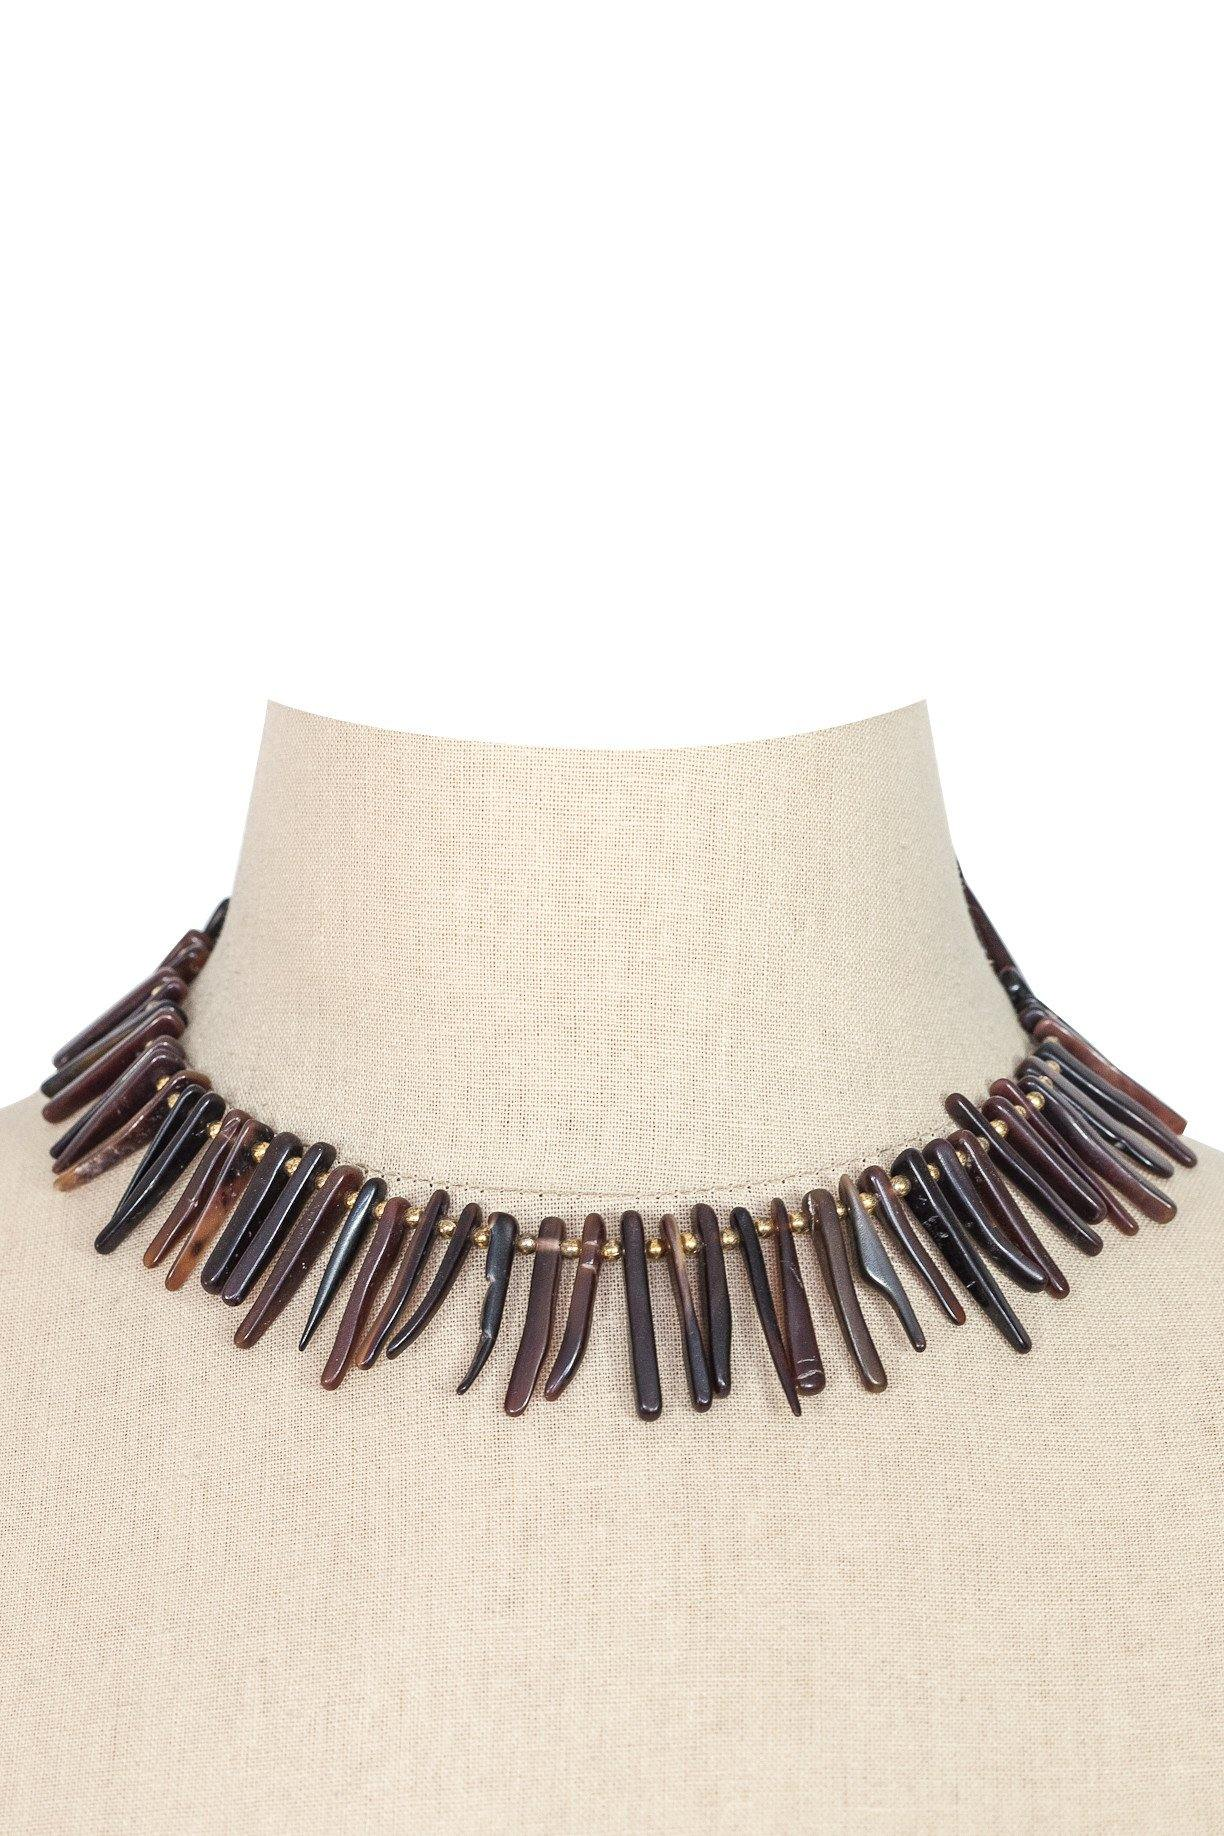 70's__Vintage__Fringe Necklace